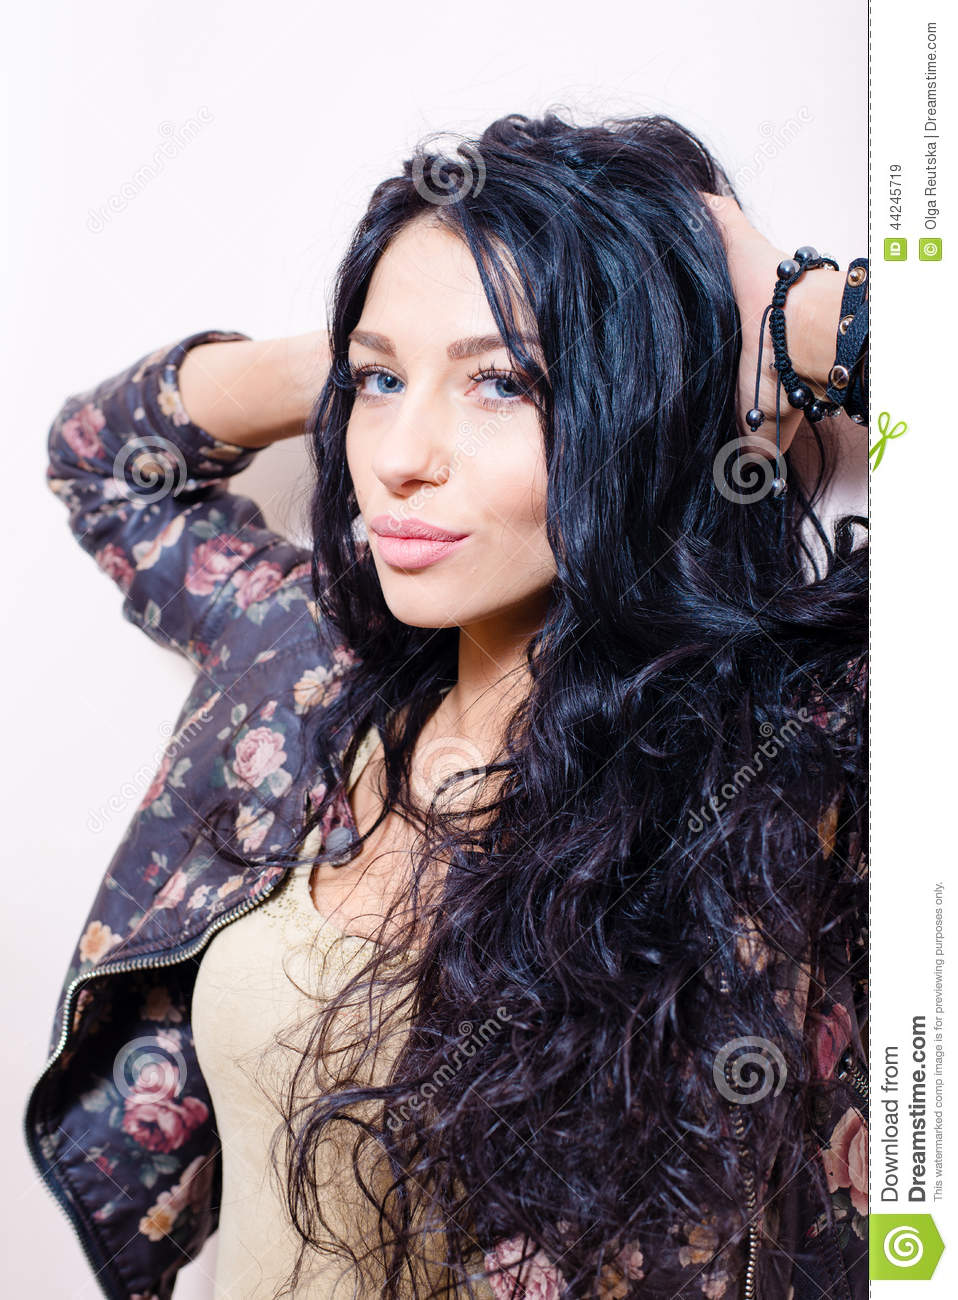 brunette young pretty lady with long hair in flower printed leather jacket having fun sensually looking at camera